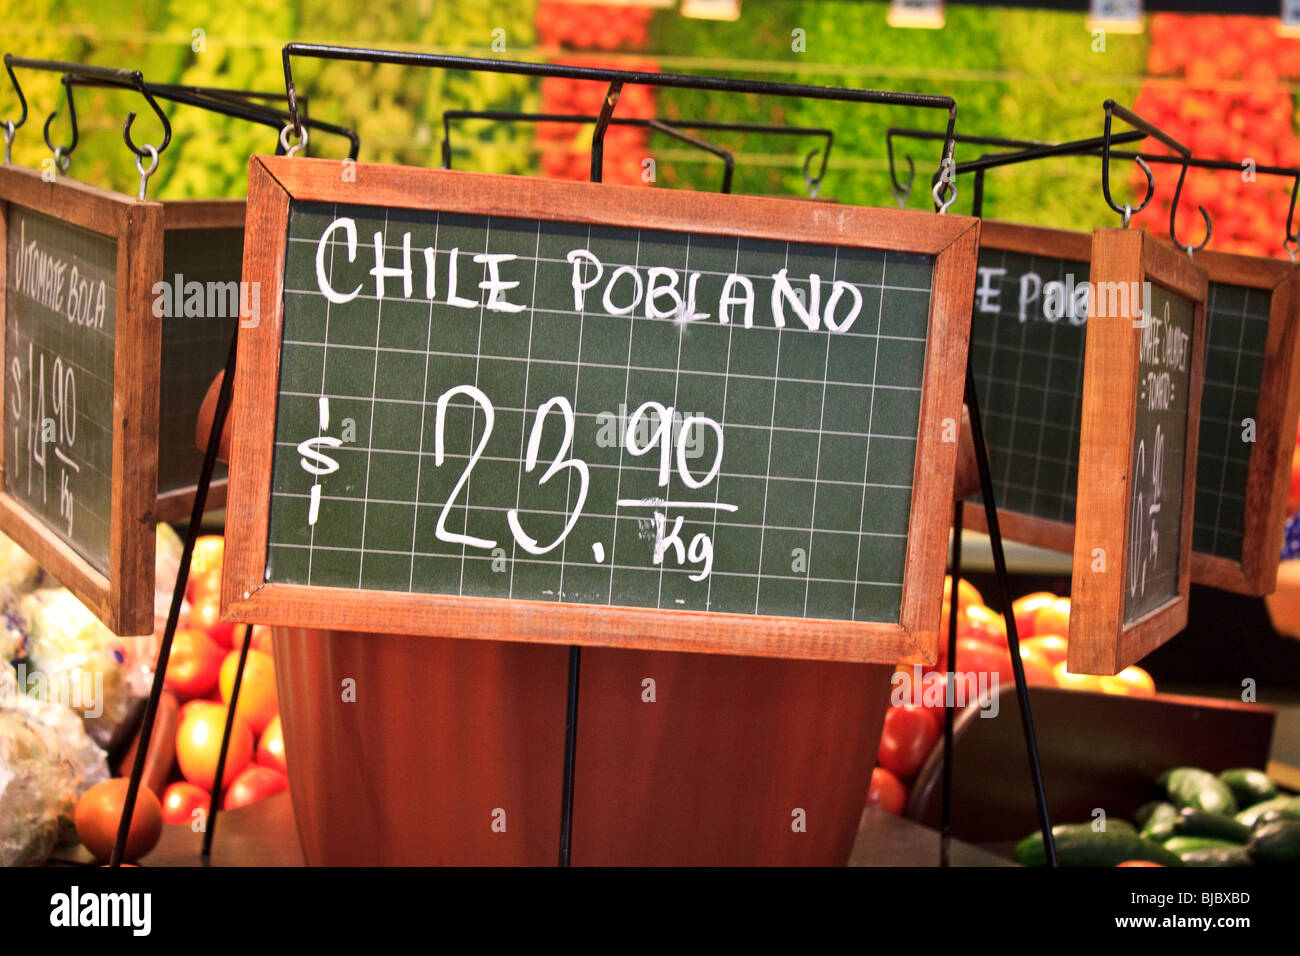 Sign showing the price in Mexican pesos for chile poblano Stock Photo